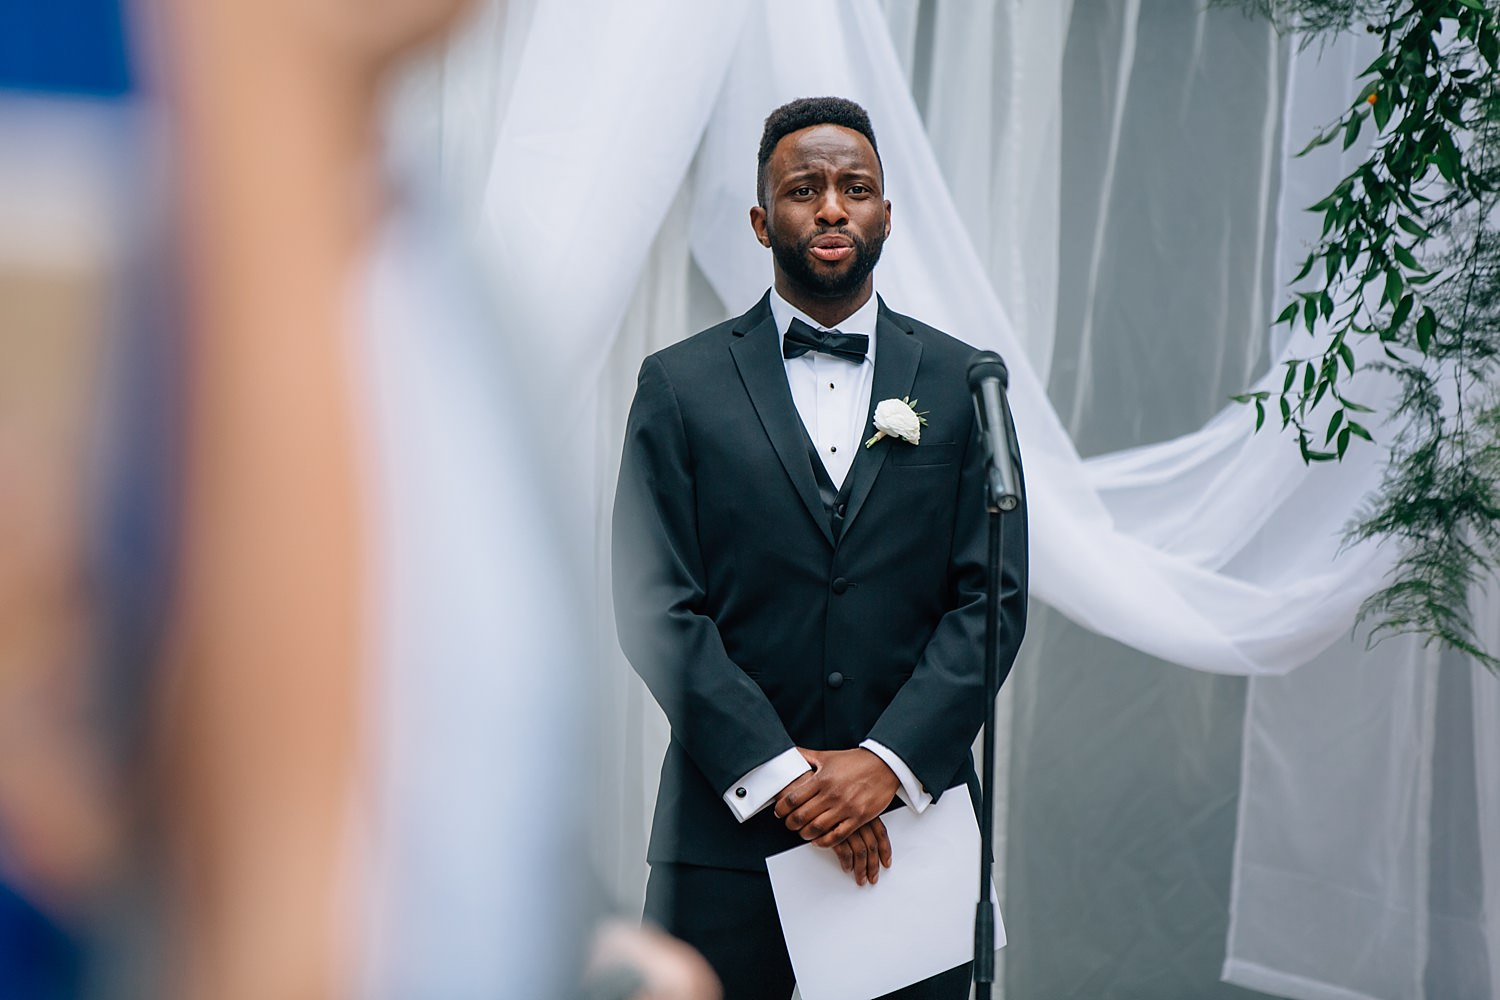 groom crying during ceremony after seeing bride for first time